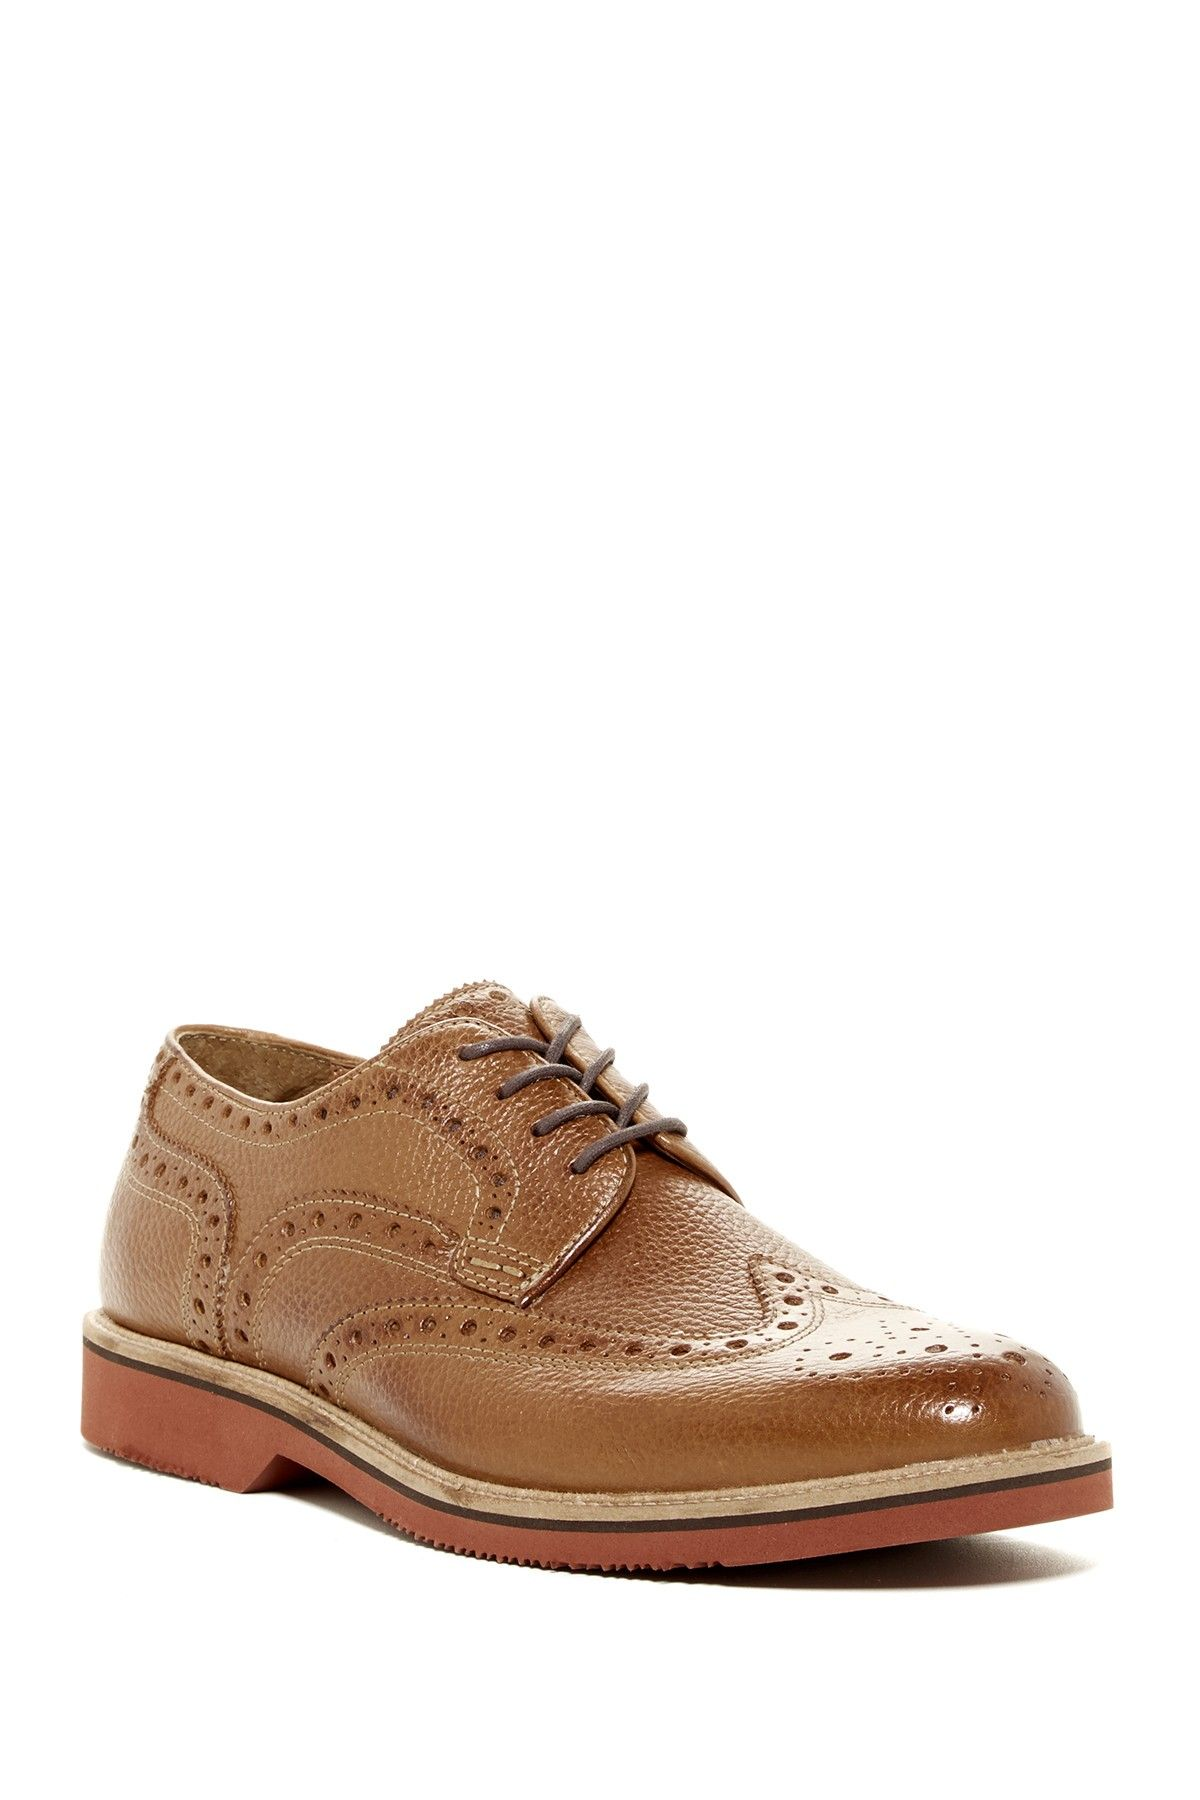 14th & Union | Jackson Wingtip - Wide Width Available | Nordstrom Rack  Sponsored by Nordstrom Rack.